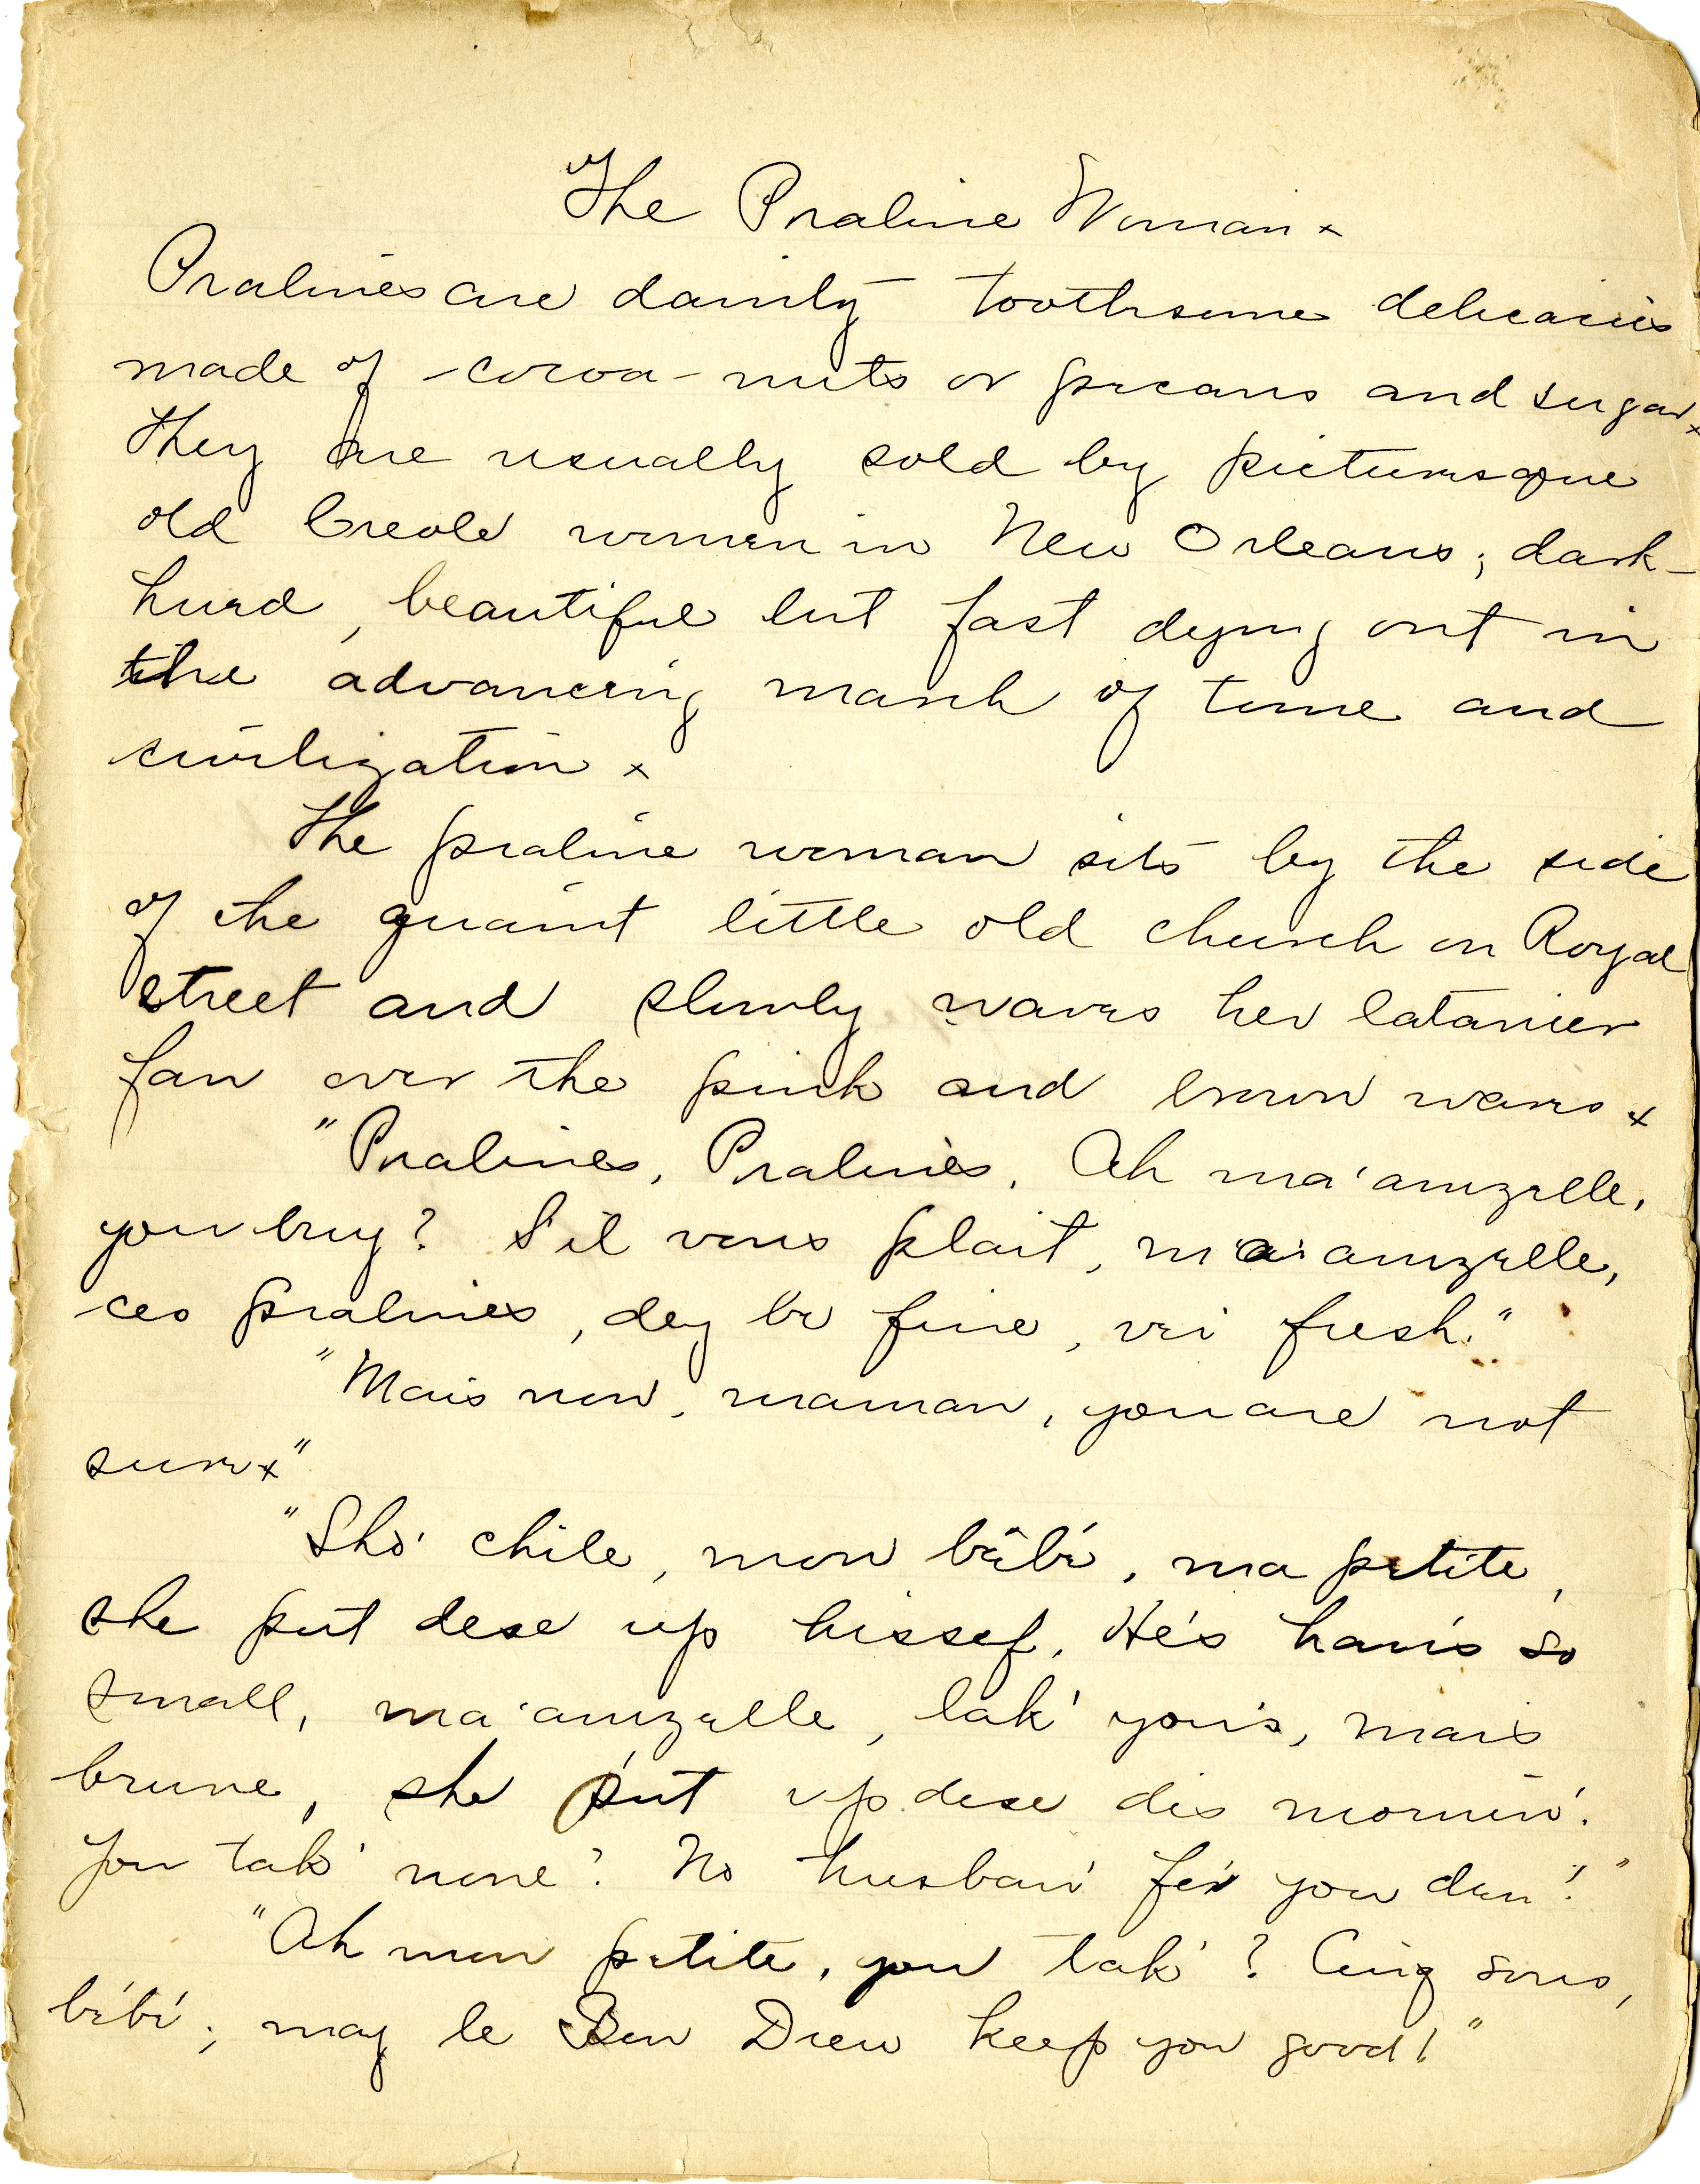 """Dunbar-Nelson, Alice More. Composition Book. Manuscript draft of """"The Praline Woman,"""" May 2, 1897 from the Alice Dunbar-Nelson papers"""